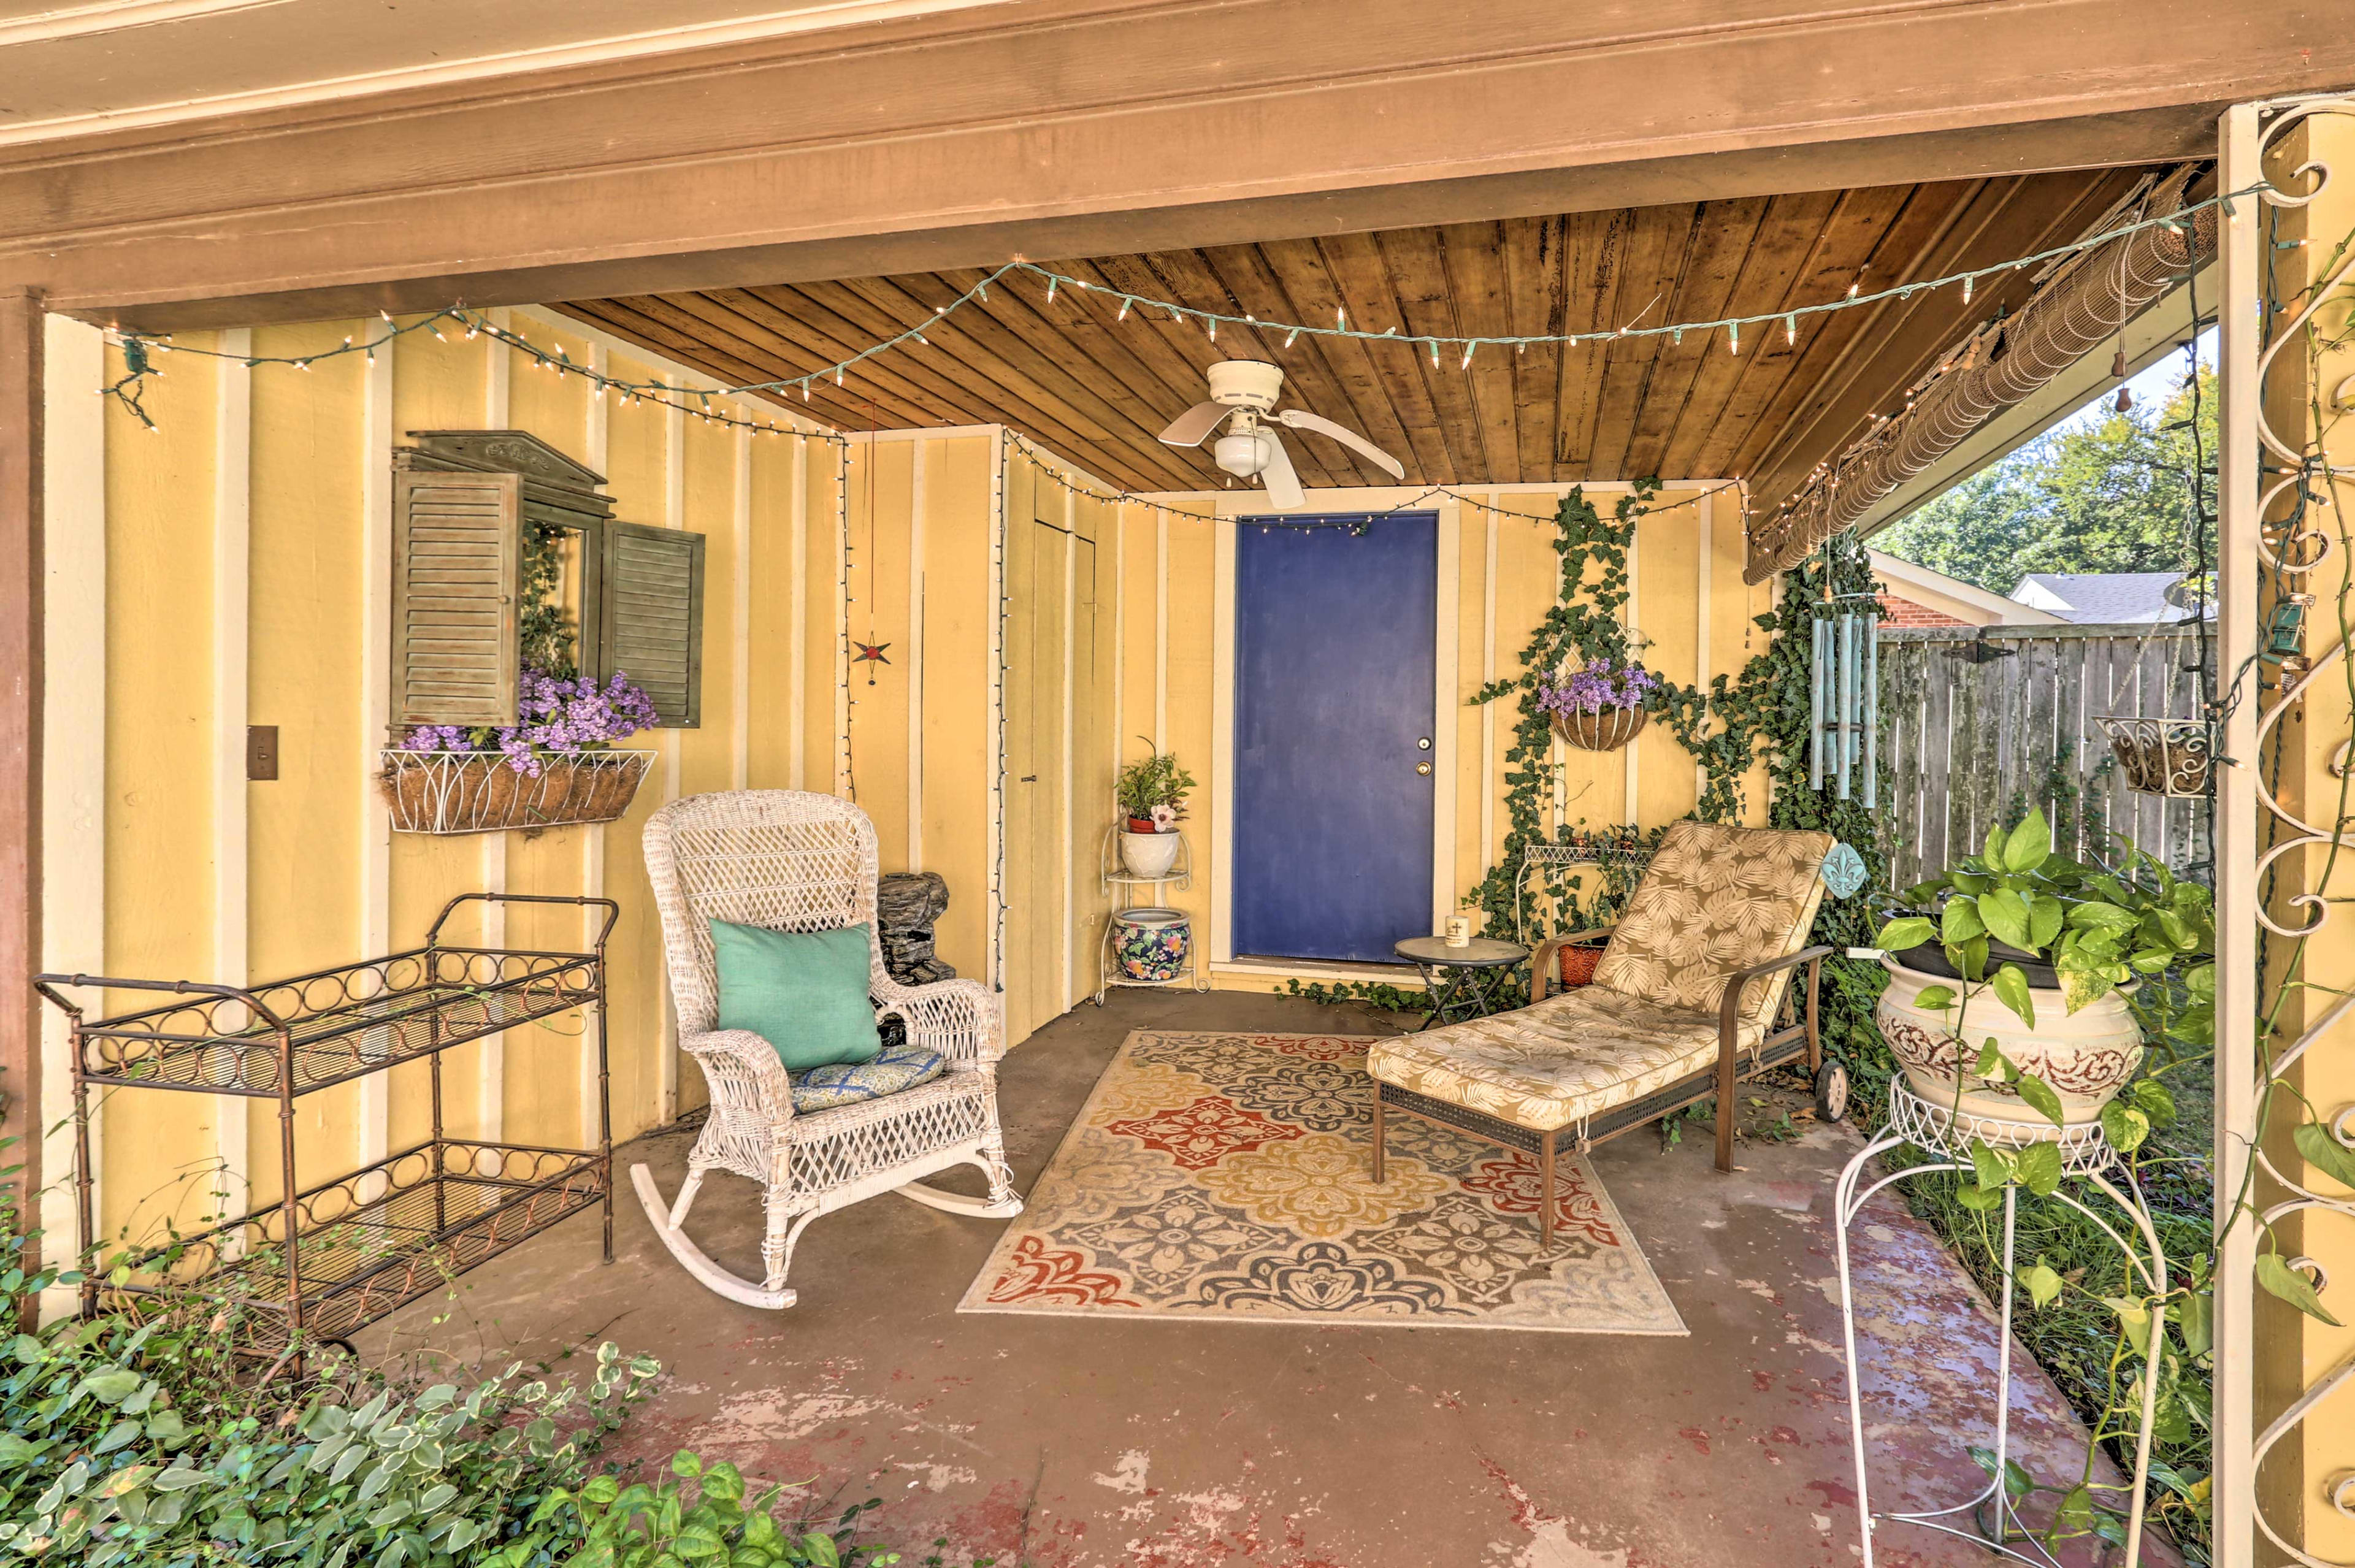 Find solace beneath the patio's shelter and string lighting.